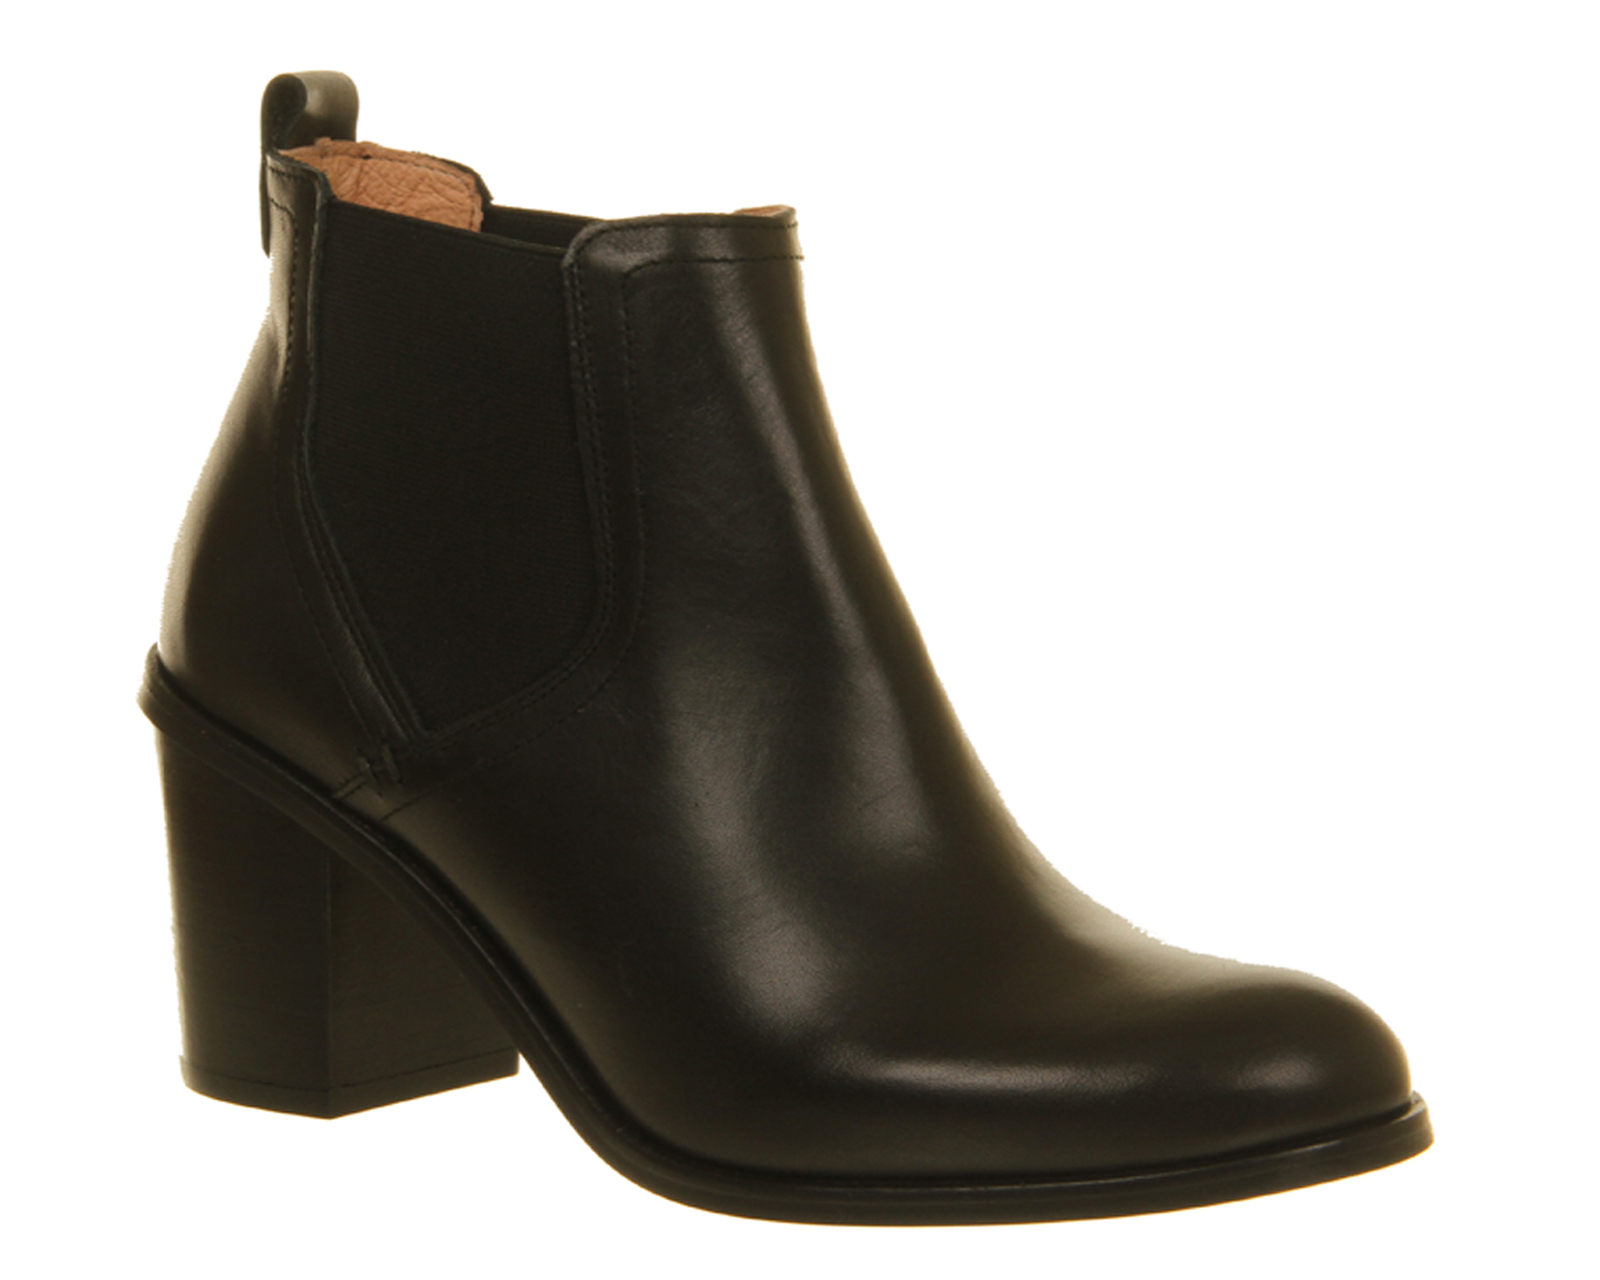 Fantastic Clarks Women39s Orinoco Club Chelsea Boots  Black Leather